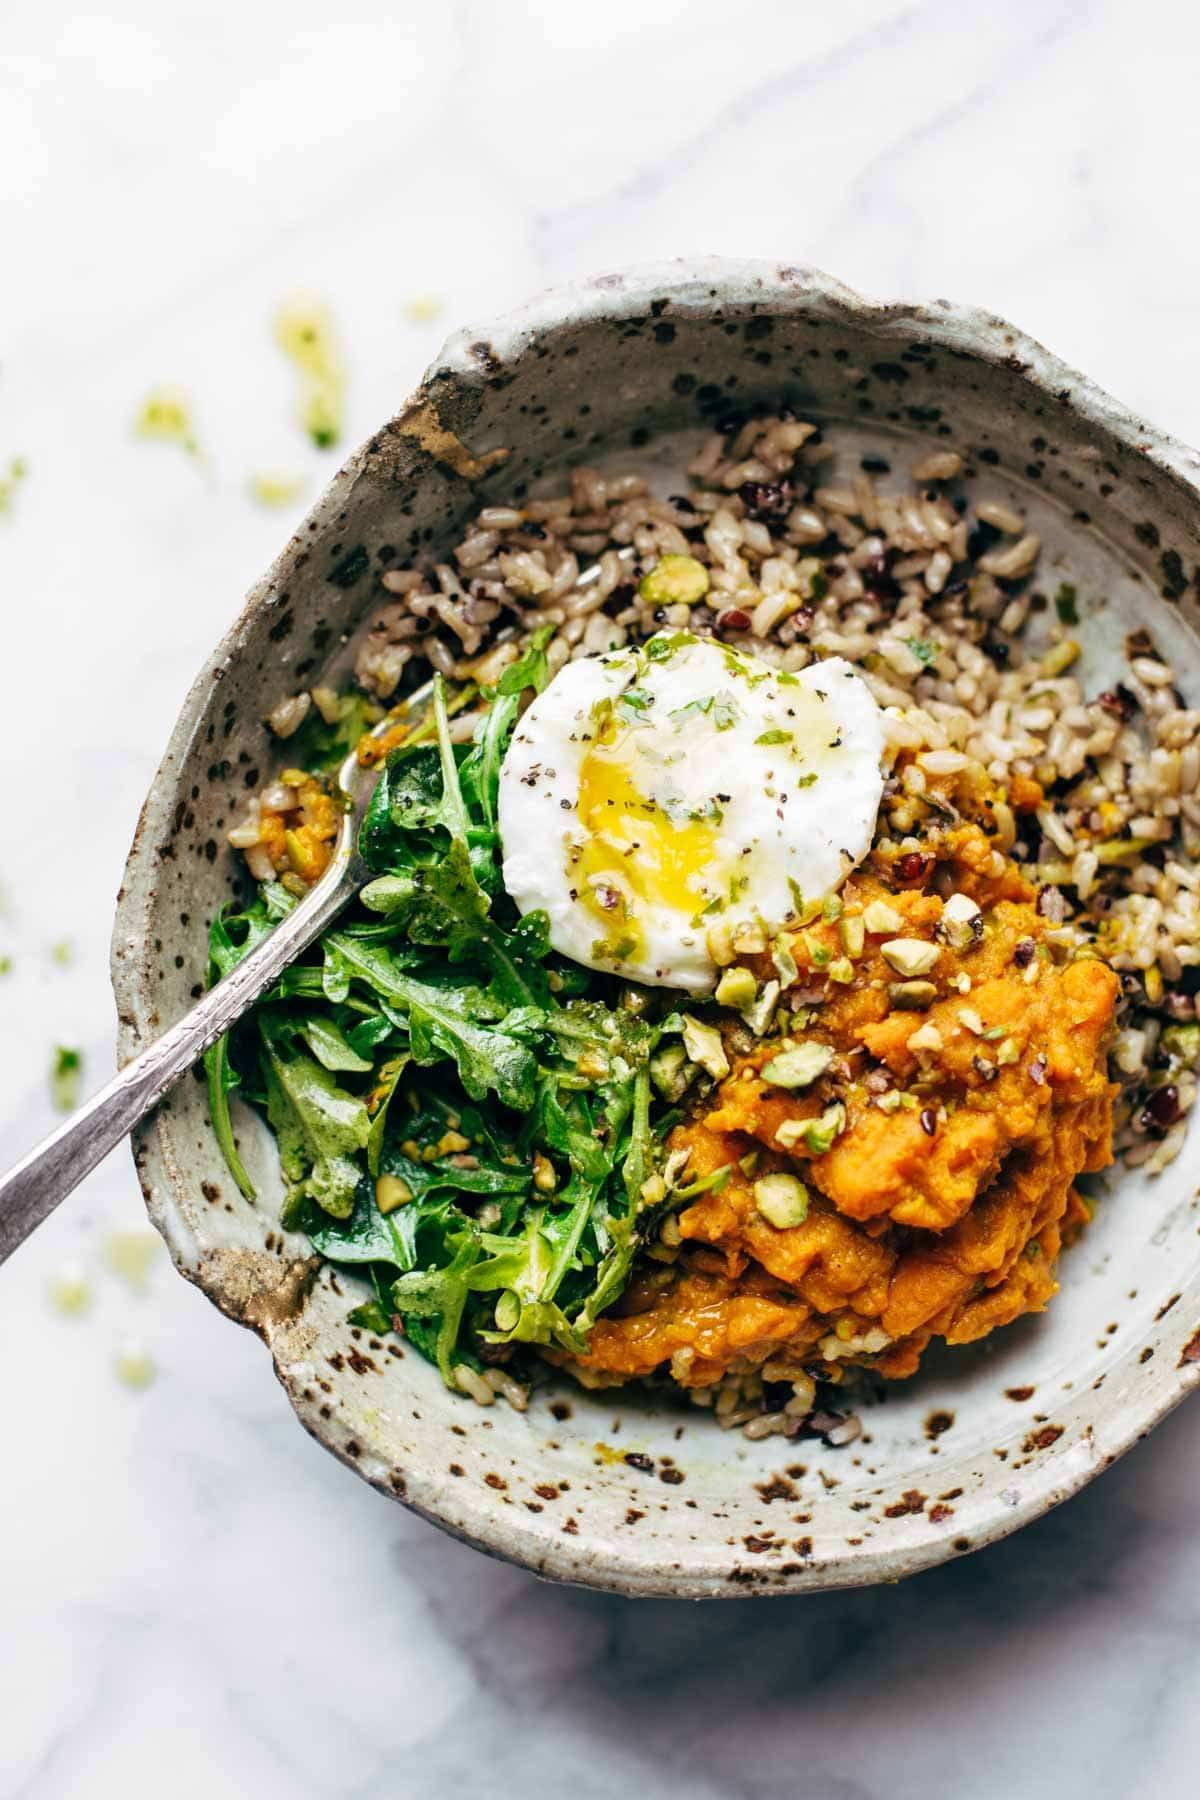 bowl with sweet potatoes and brown rice with an egg and a fork